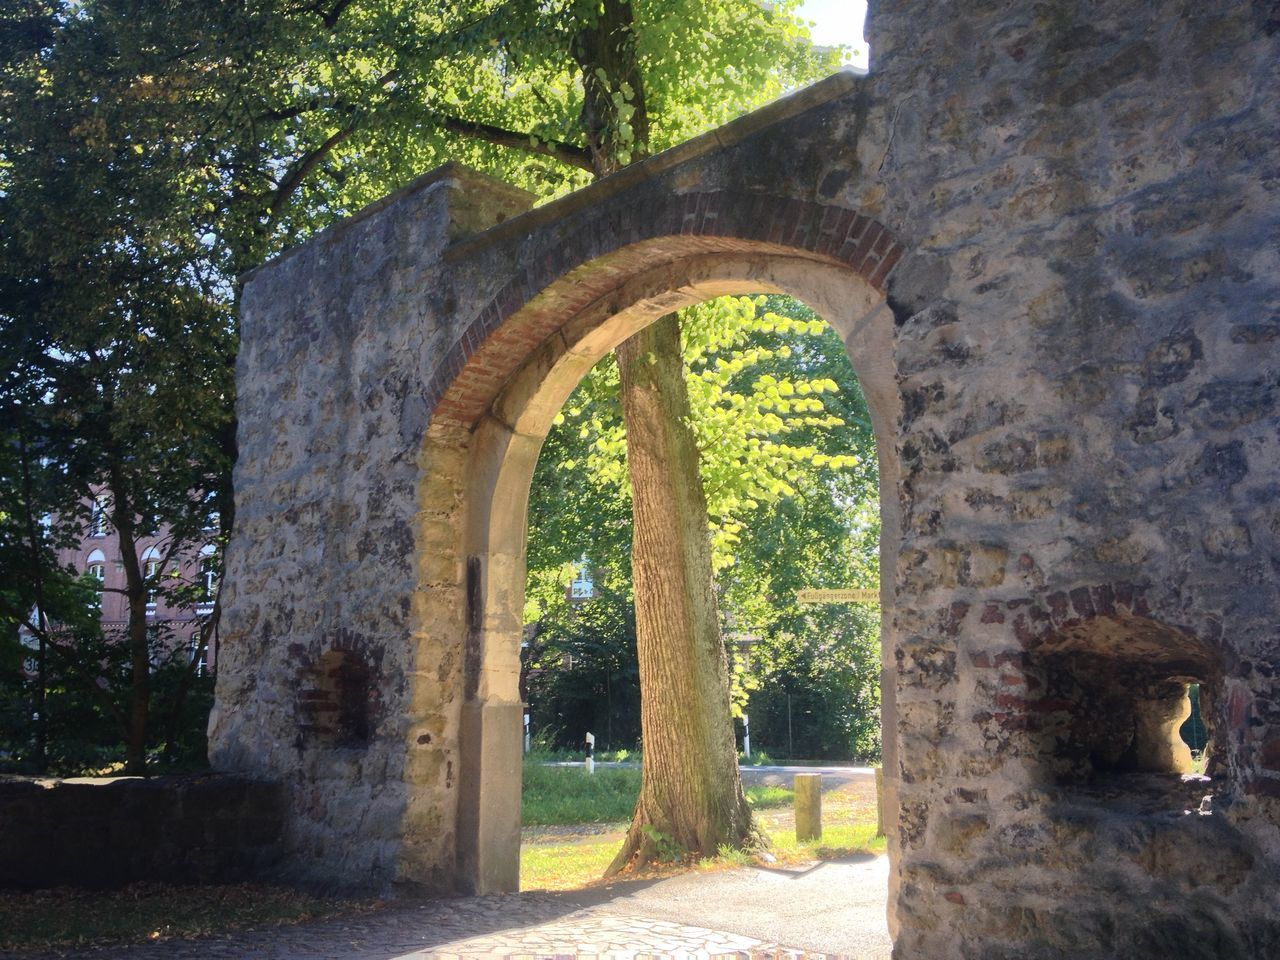 Arch Architecture Built Structure Burg Vischering Green History Light Old Old Ruin Outdoors Passage The Past Tree Tree Trunk